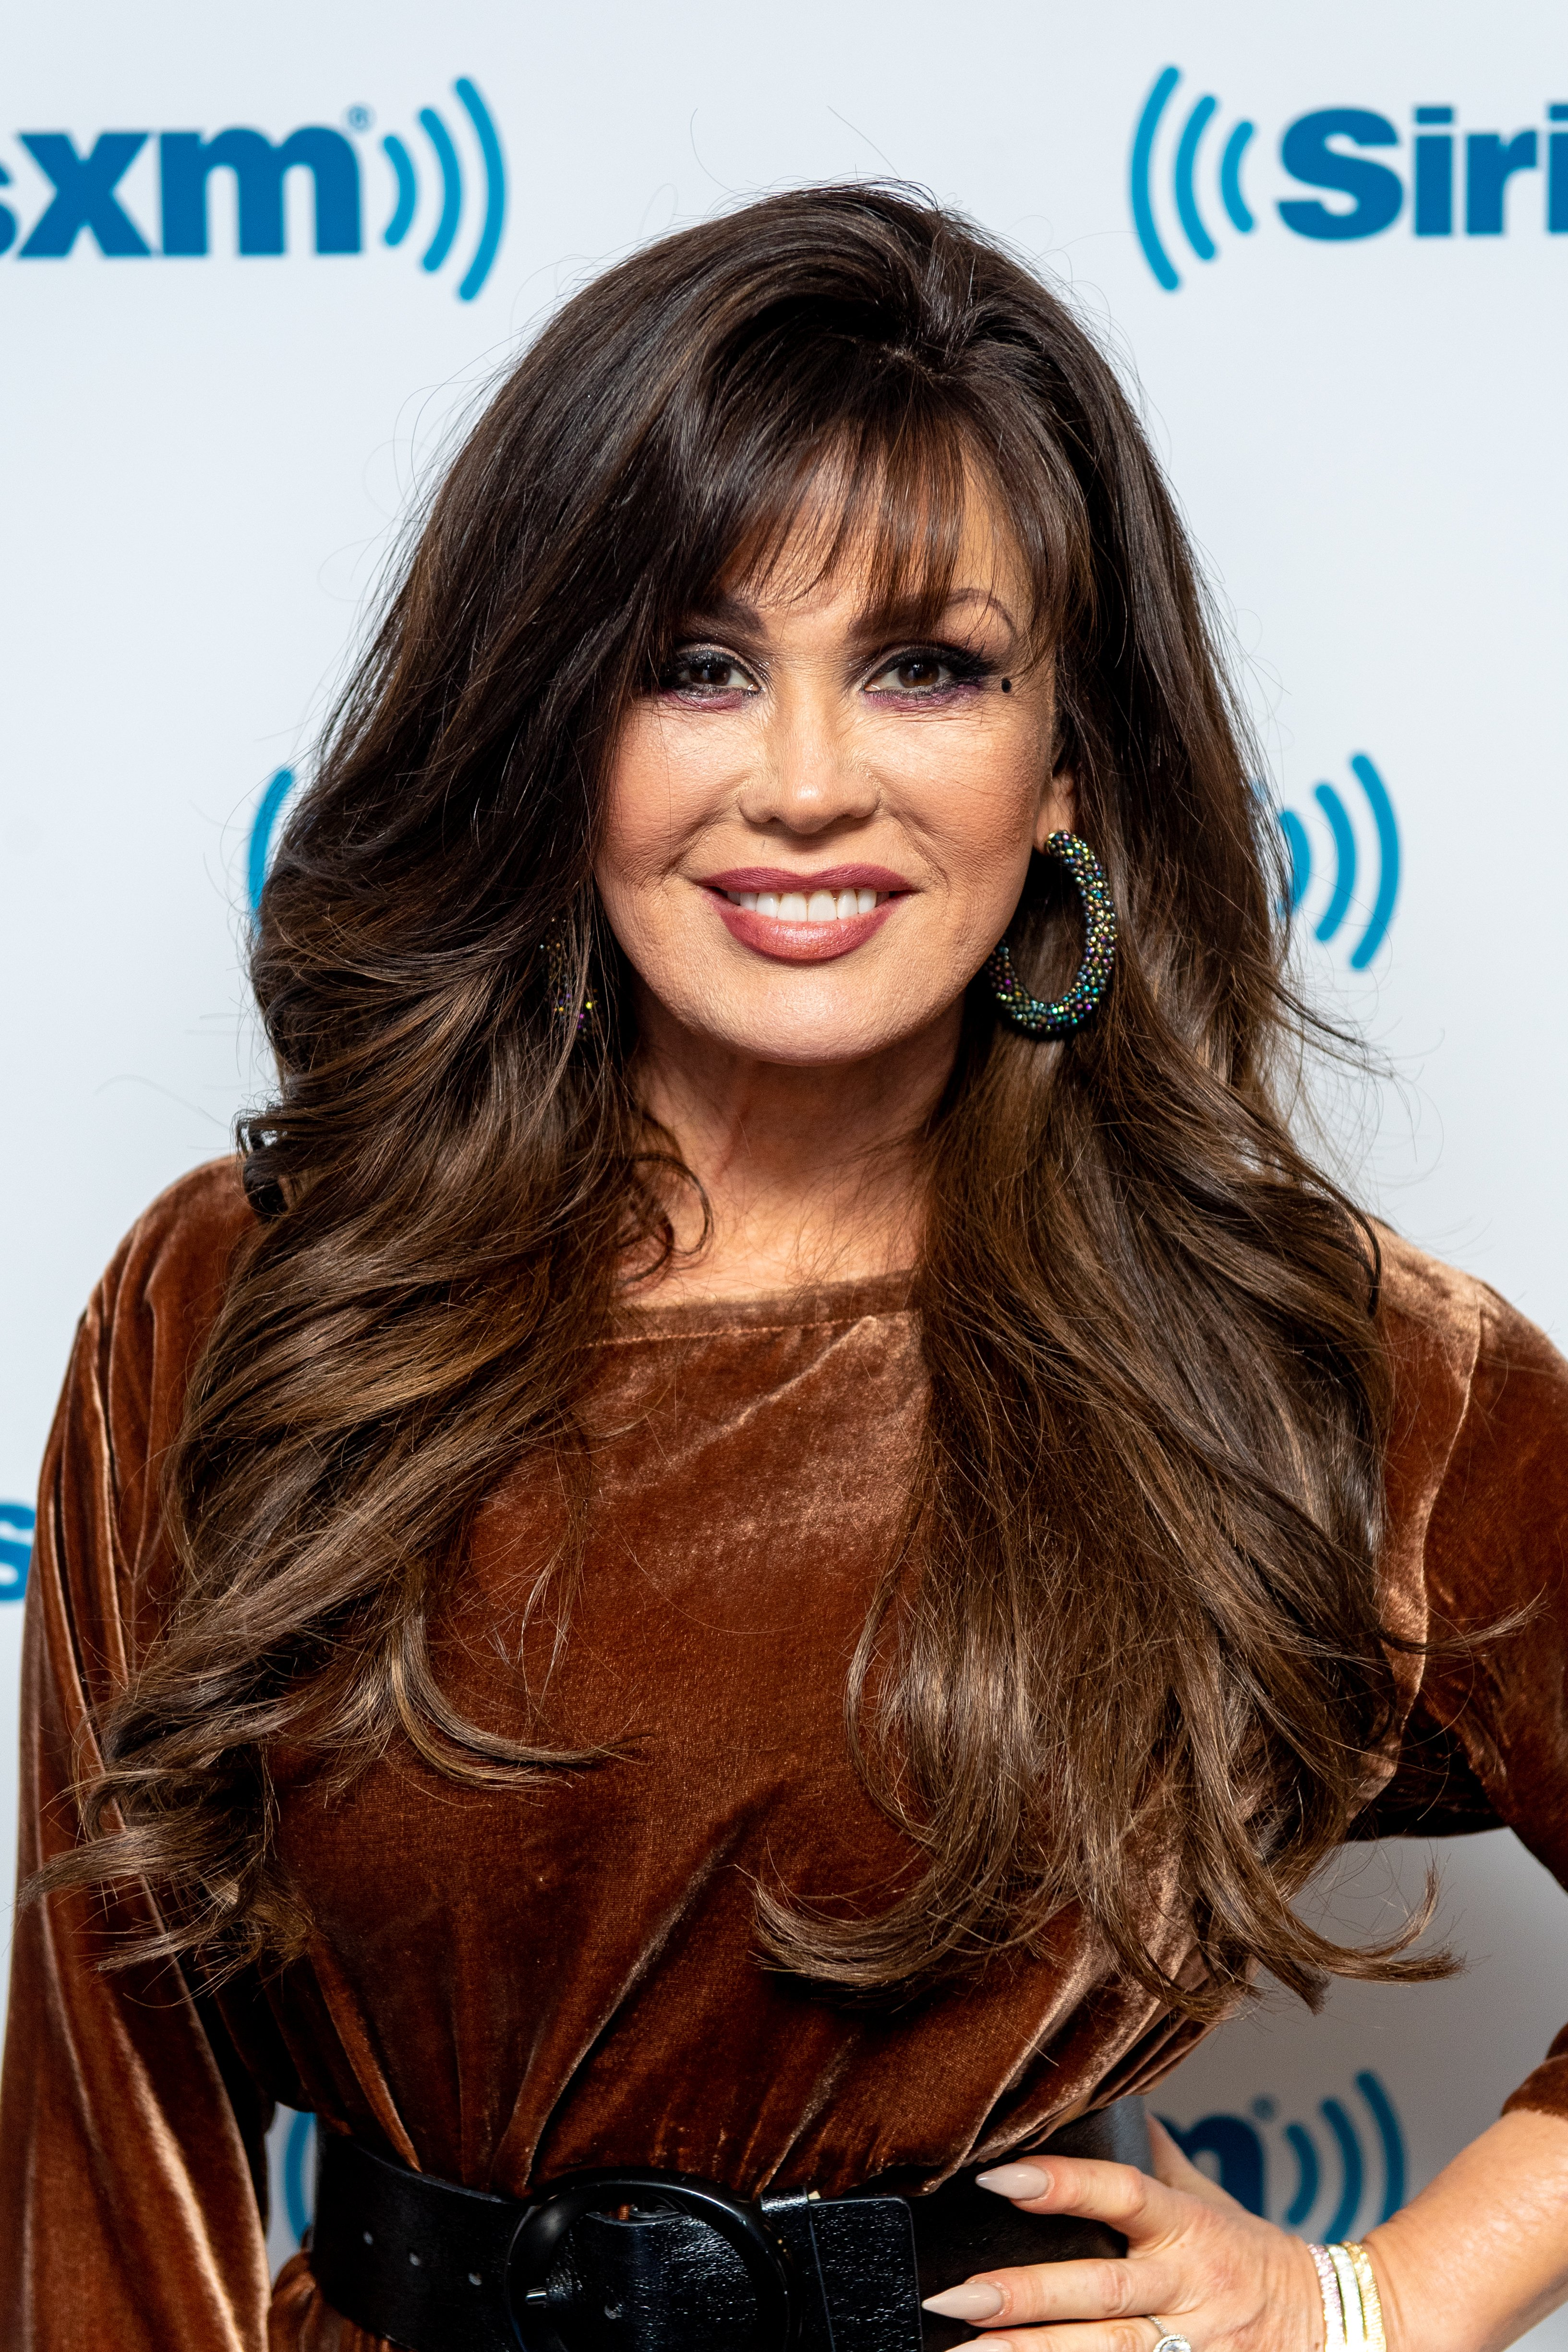 Marie Osmond visits SiriusXM Studios on January 08, 2019 in New York City   Photo: Getty Images